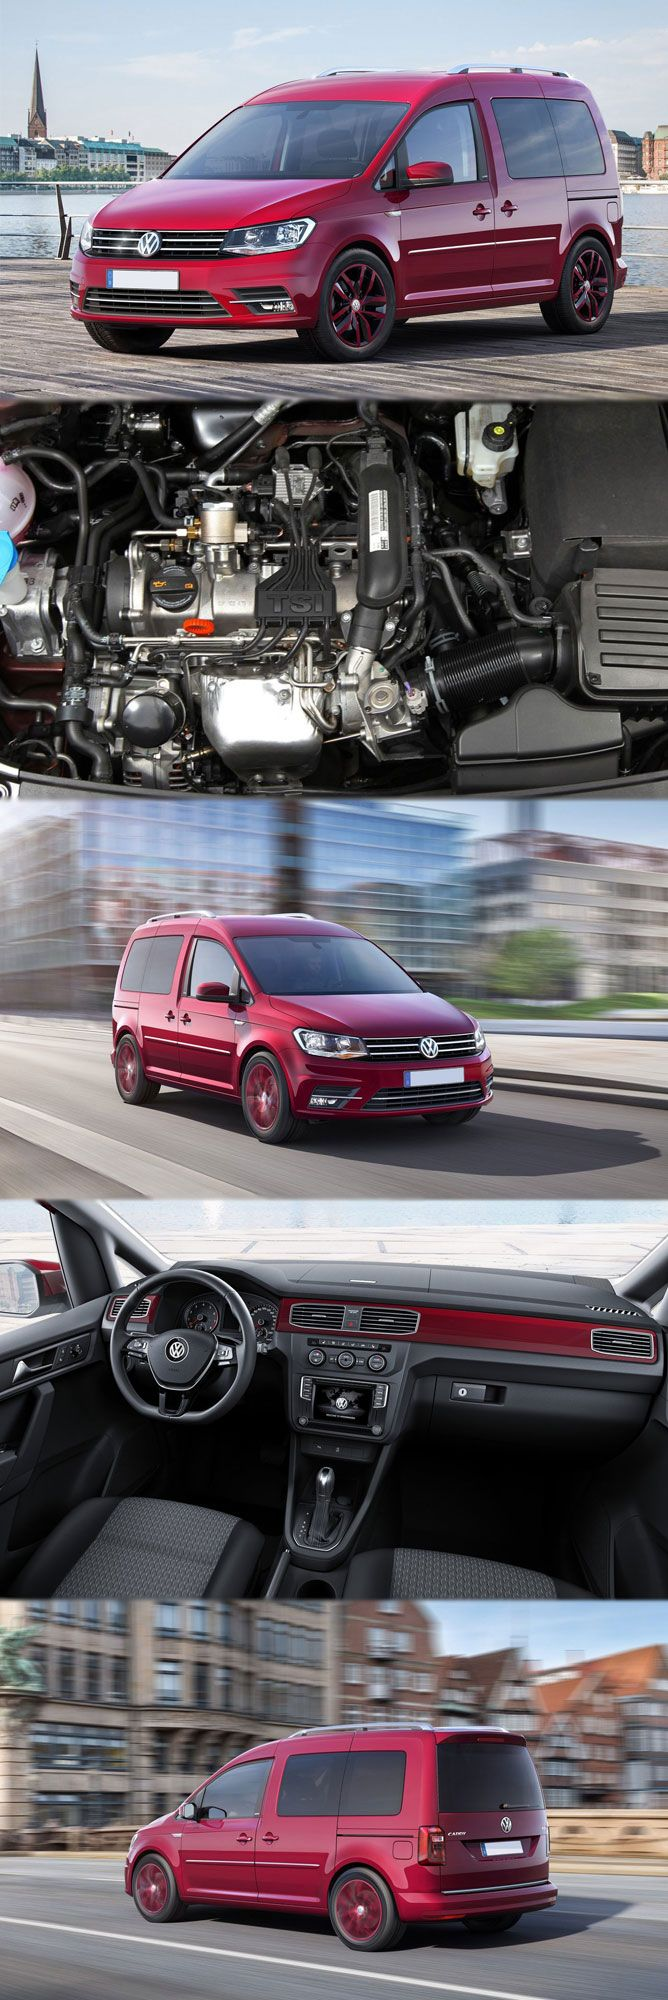 Volkswagen Caddy Built to Impress https://www.reconditionengines.co.uk/rec-model.asp?part=reconditioned-vw-caddy-engine&mo_id=31208